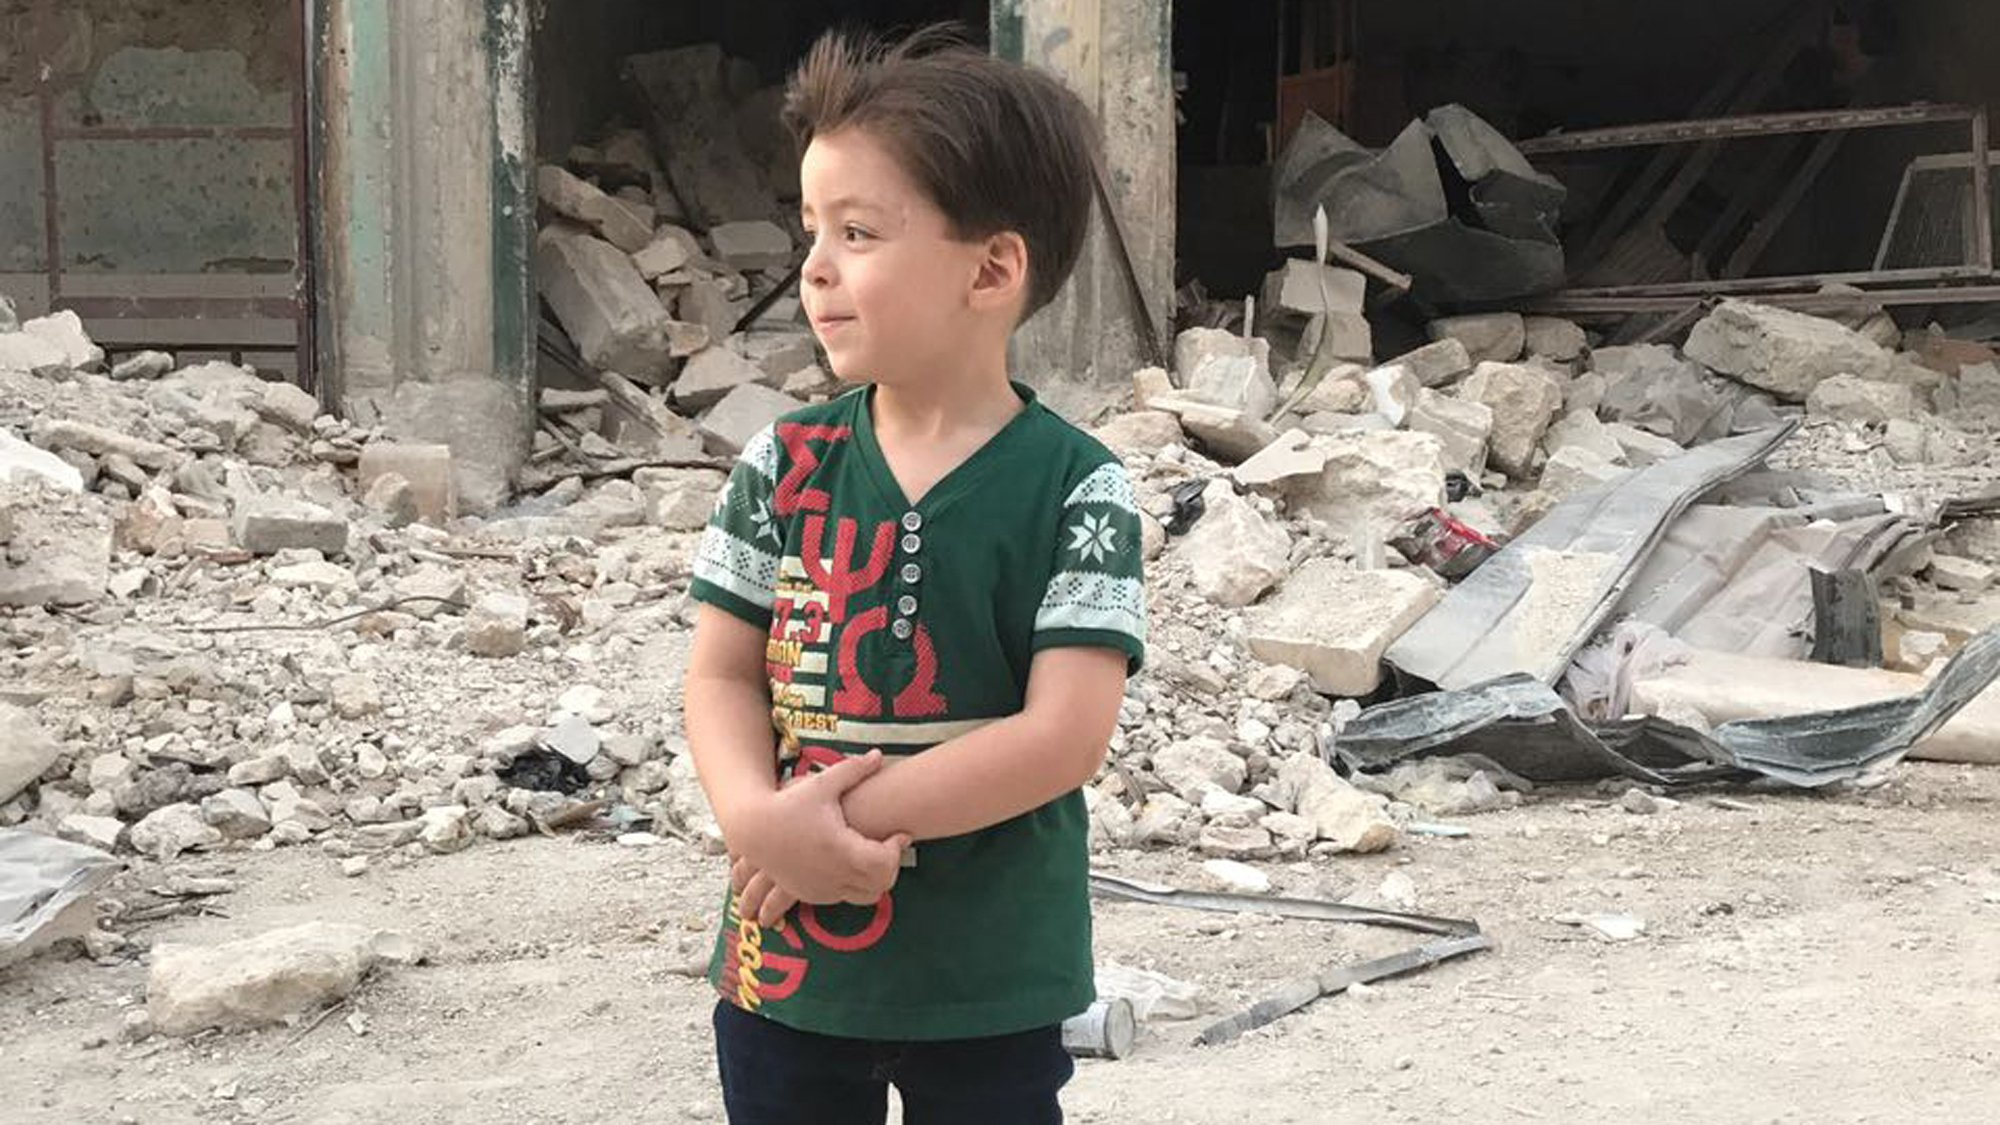 Omran Daqneesh is seen in Aleppo a year after his home partly collapsed in a strike. (Credit: CNN)